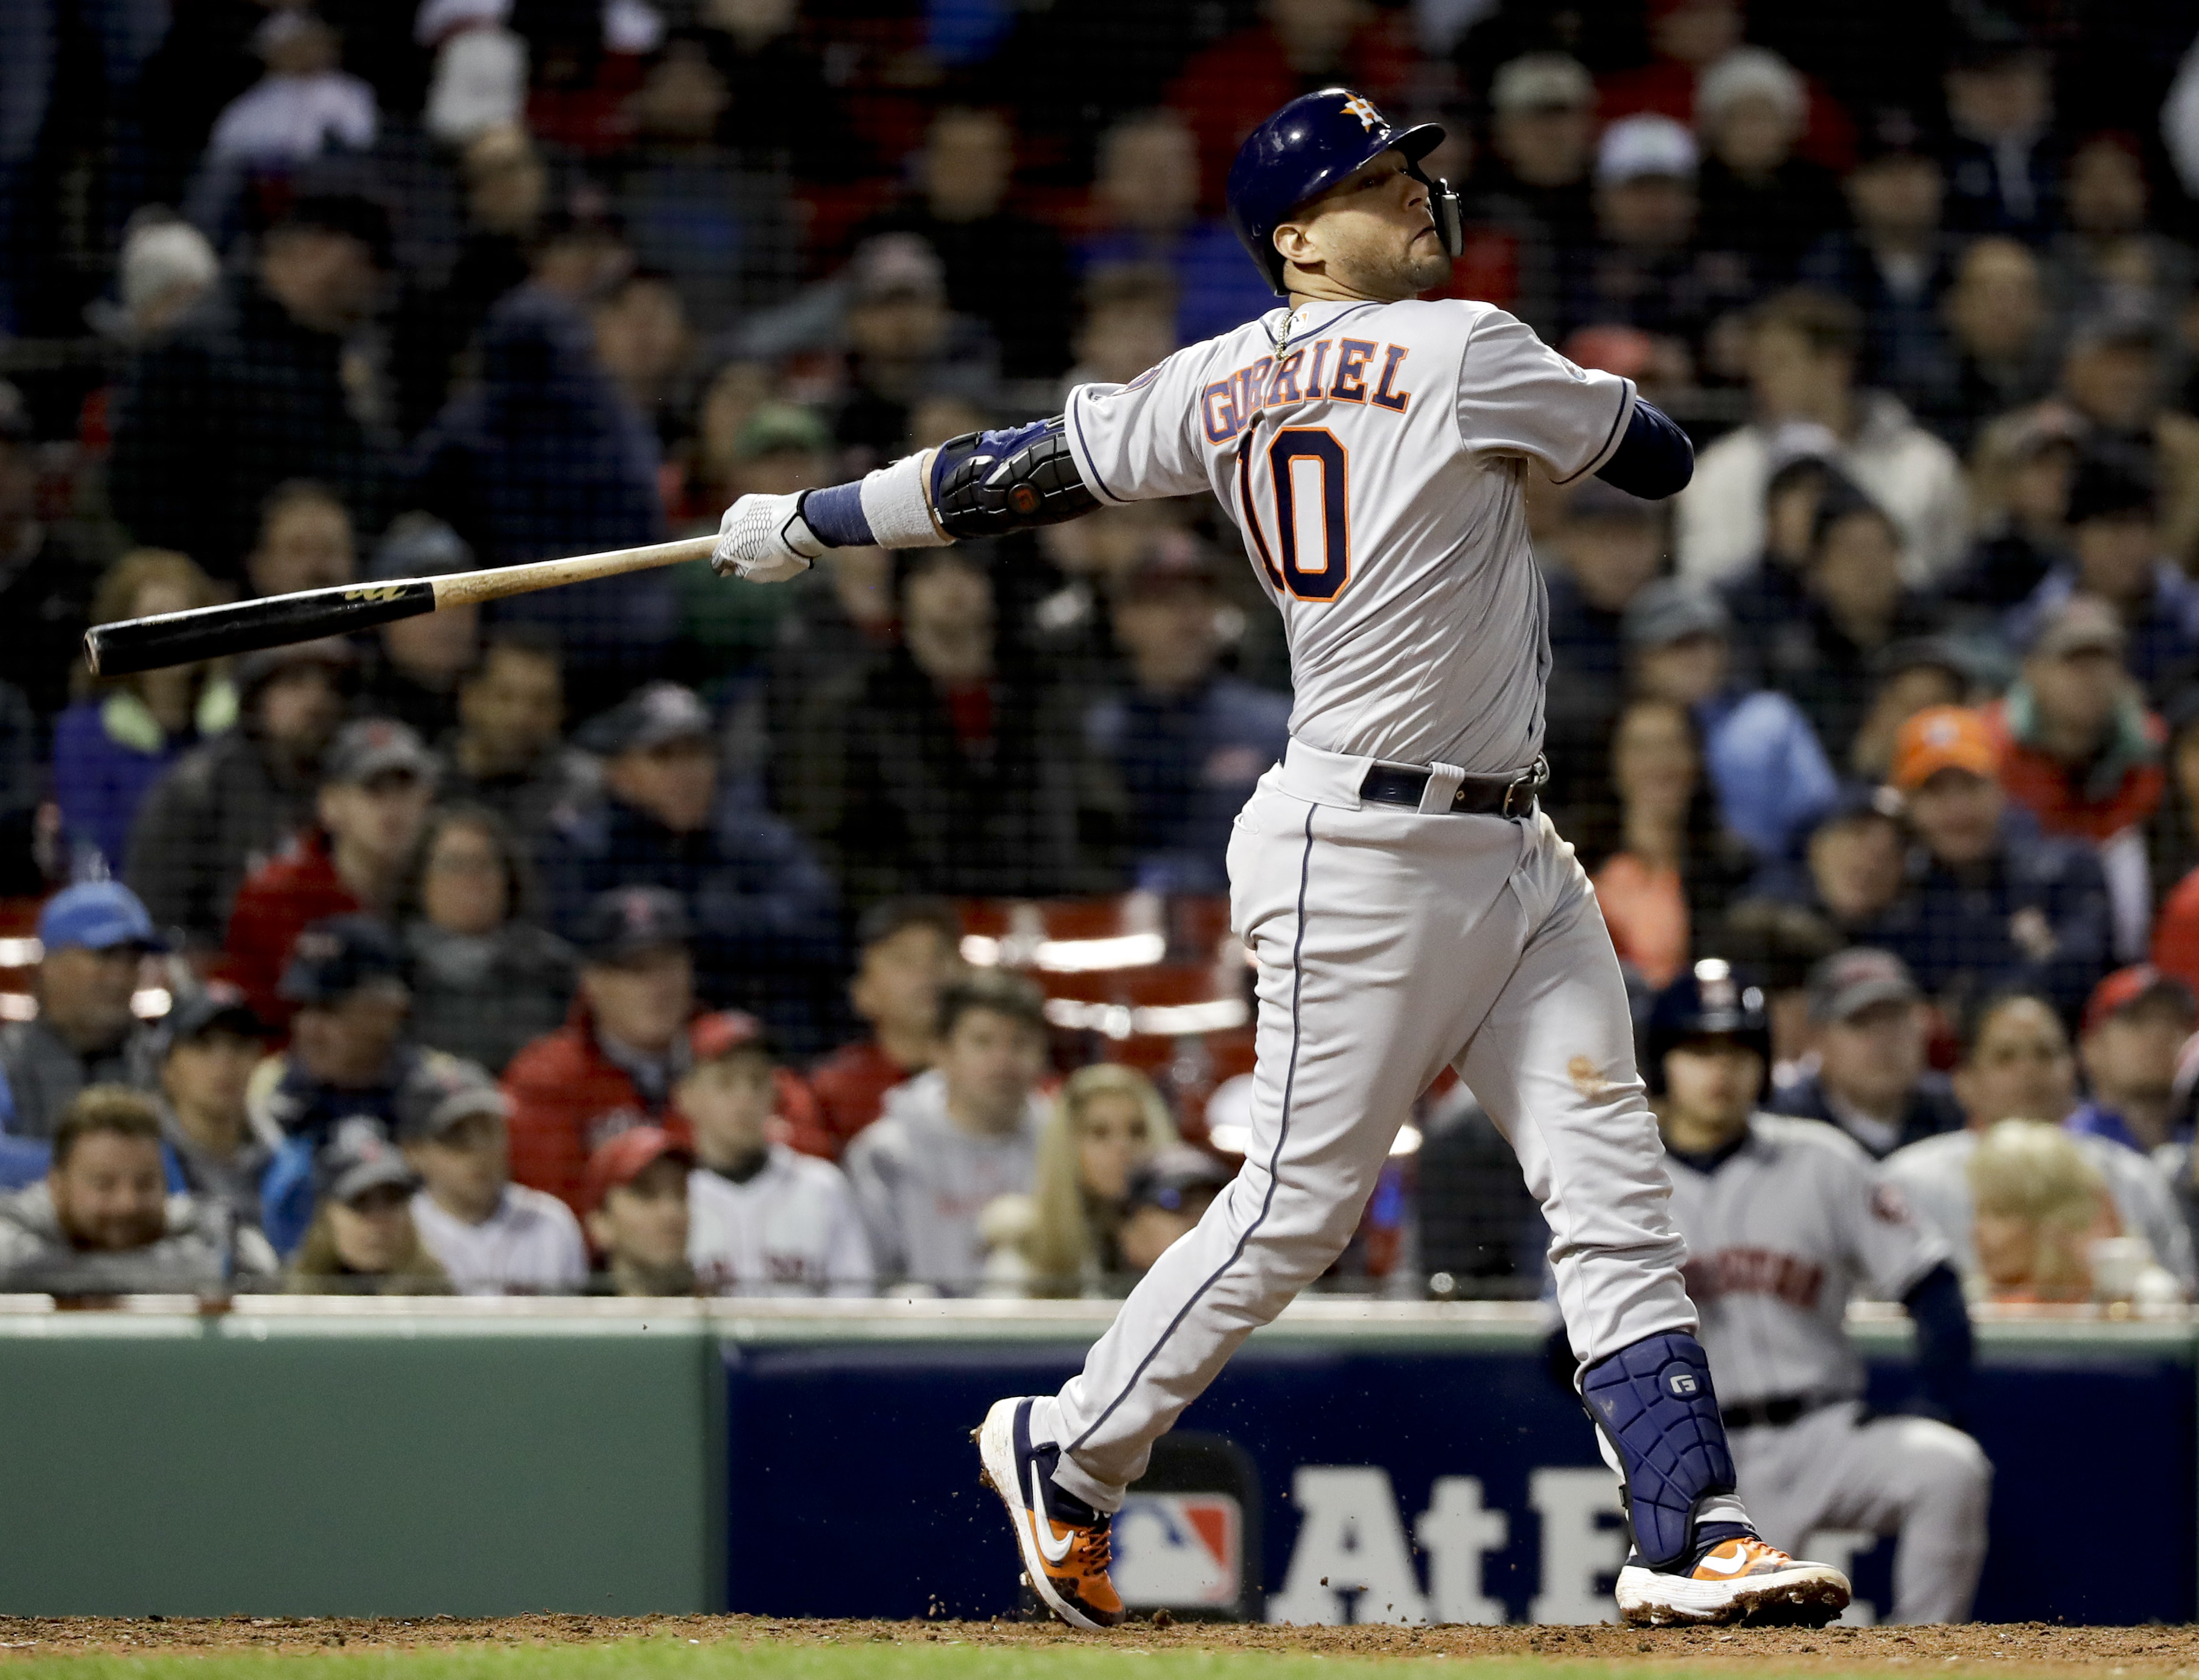 Yuli Gurriel watches his three-run home run against the Boston Red Sox during Game 1 of the ALCS.